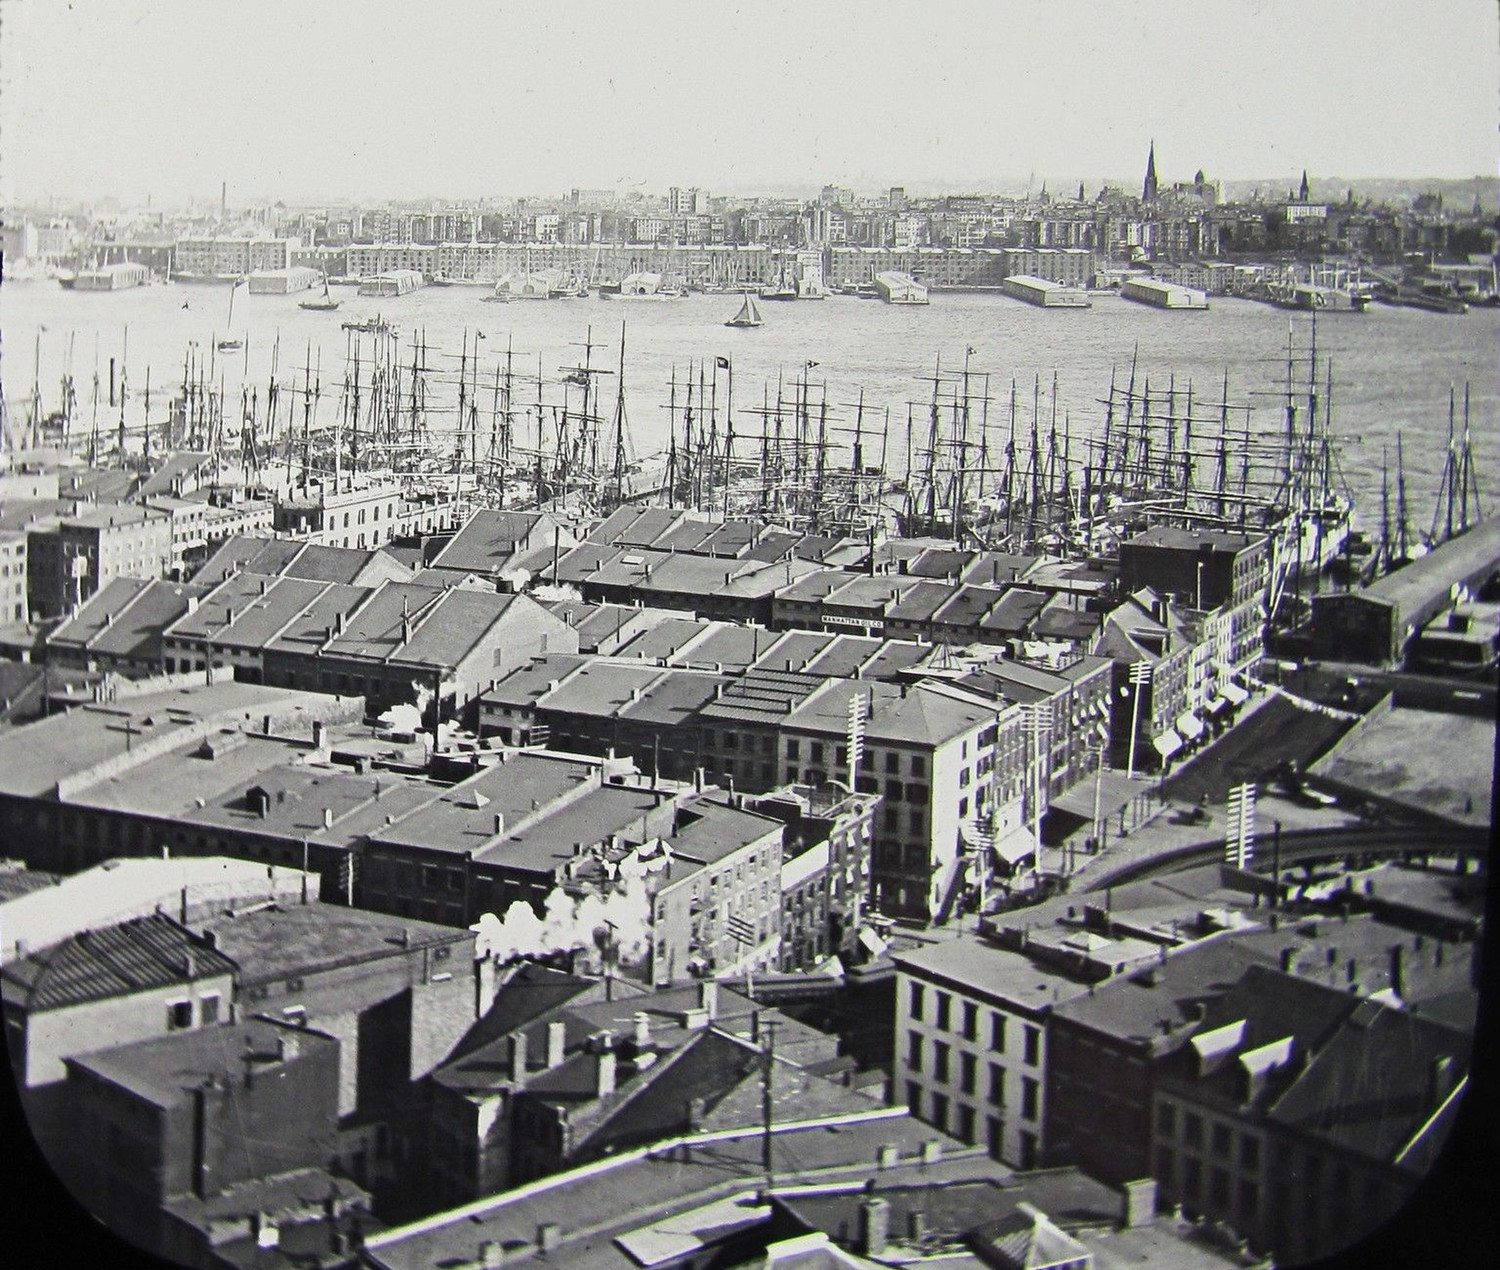 A Very Early View of Lower Manhattan Looking East Towards The East River & Brooklyn circa 1892